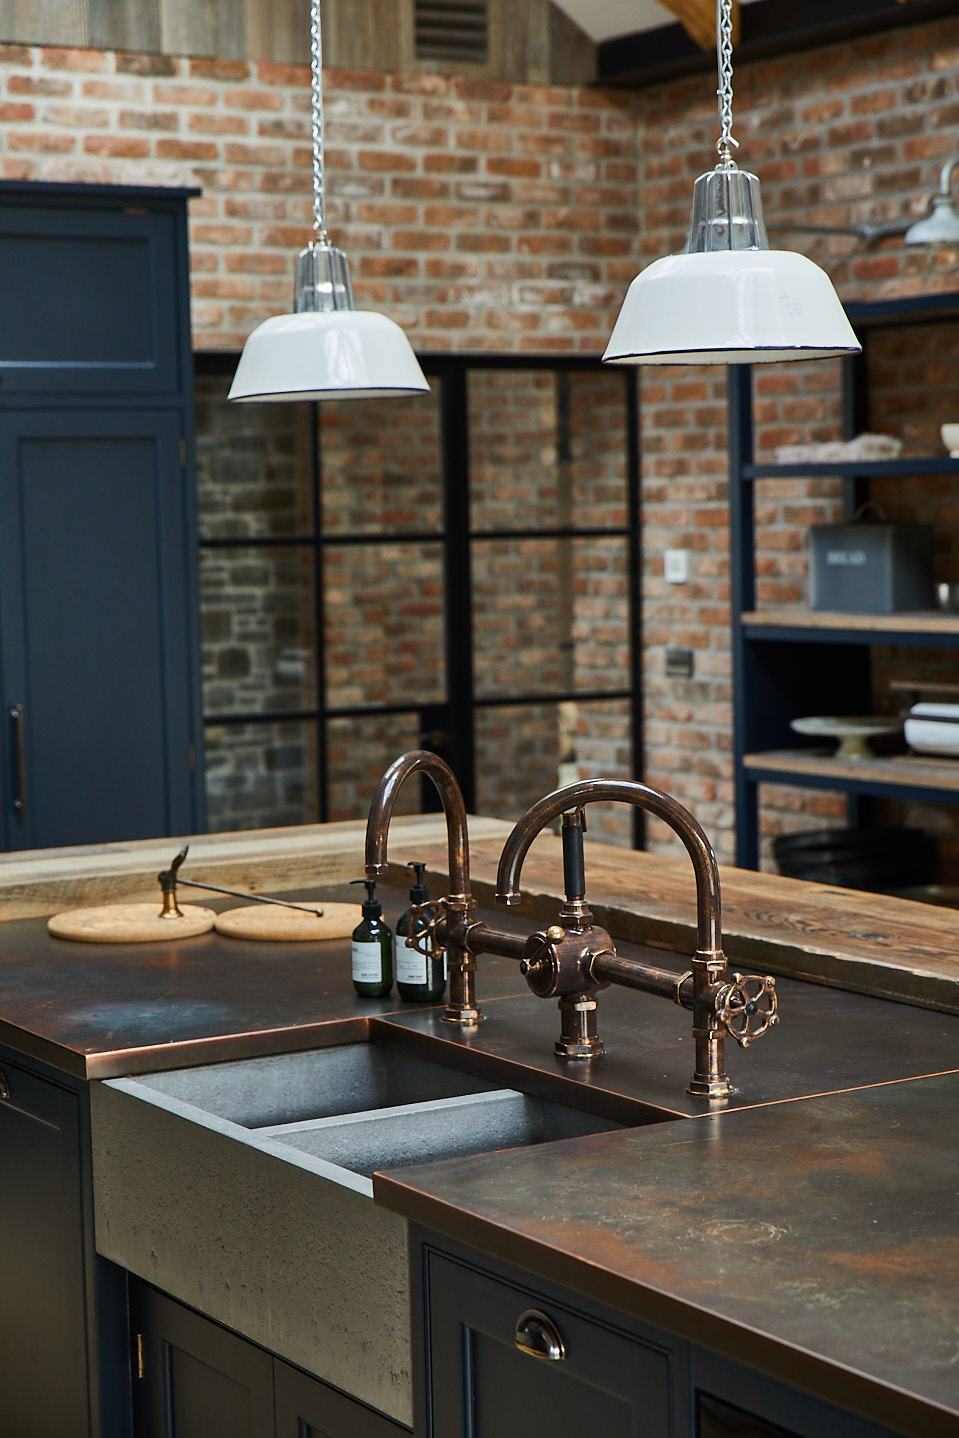 Cornwall aged-copper worktop and Waterworks tap